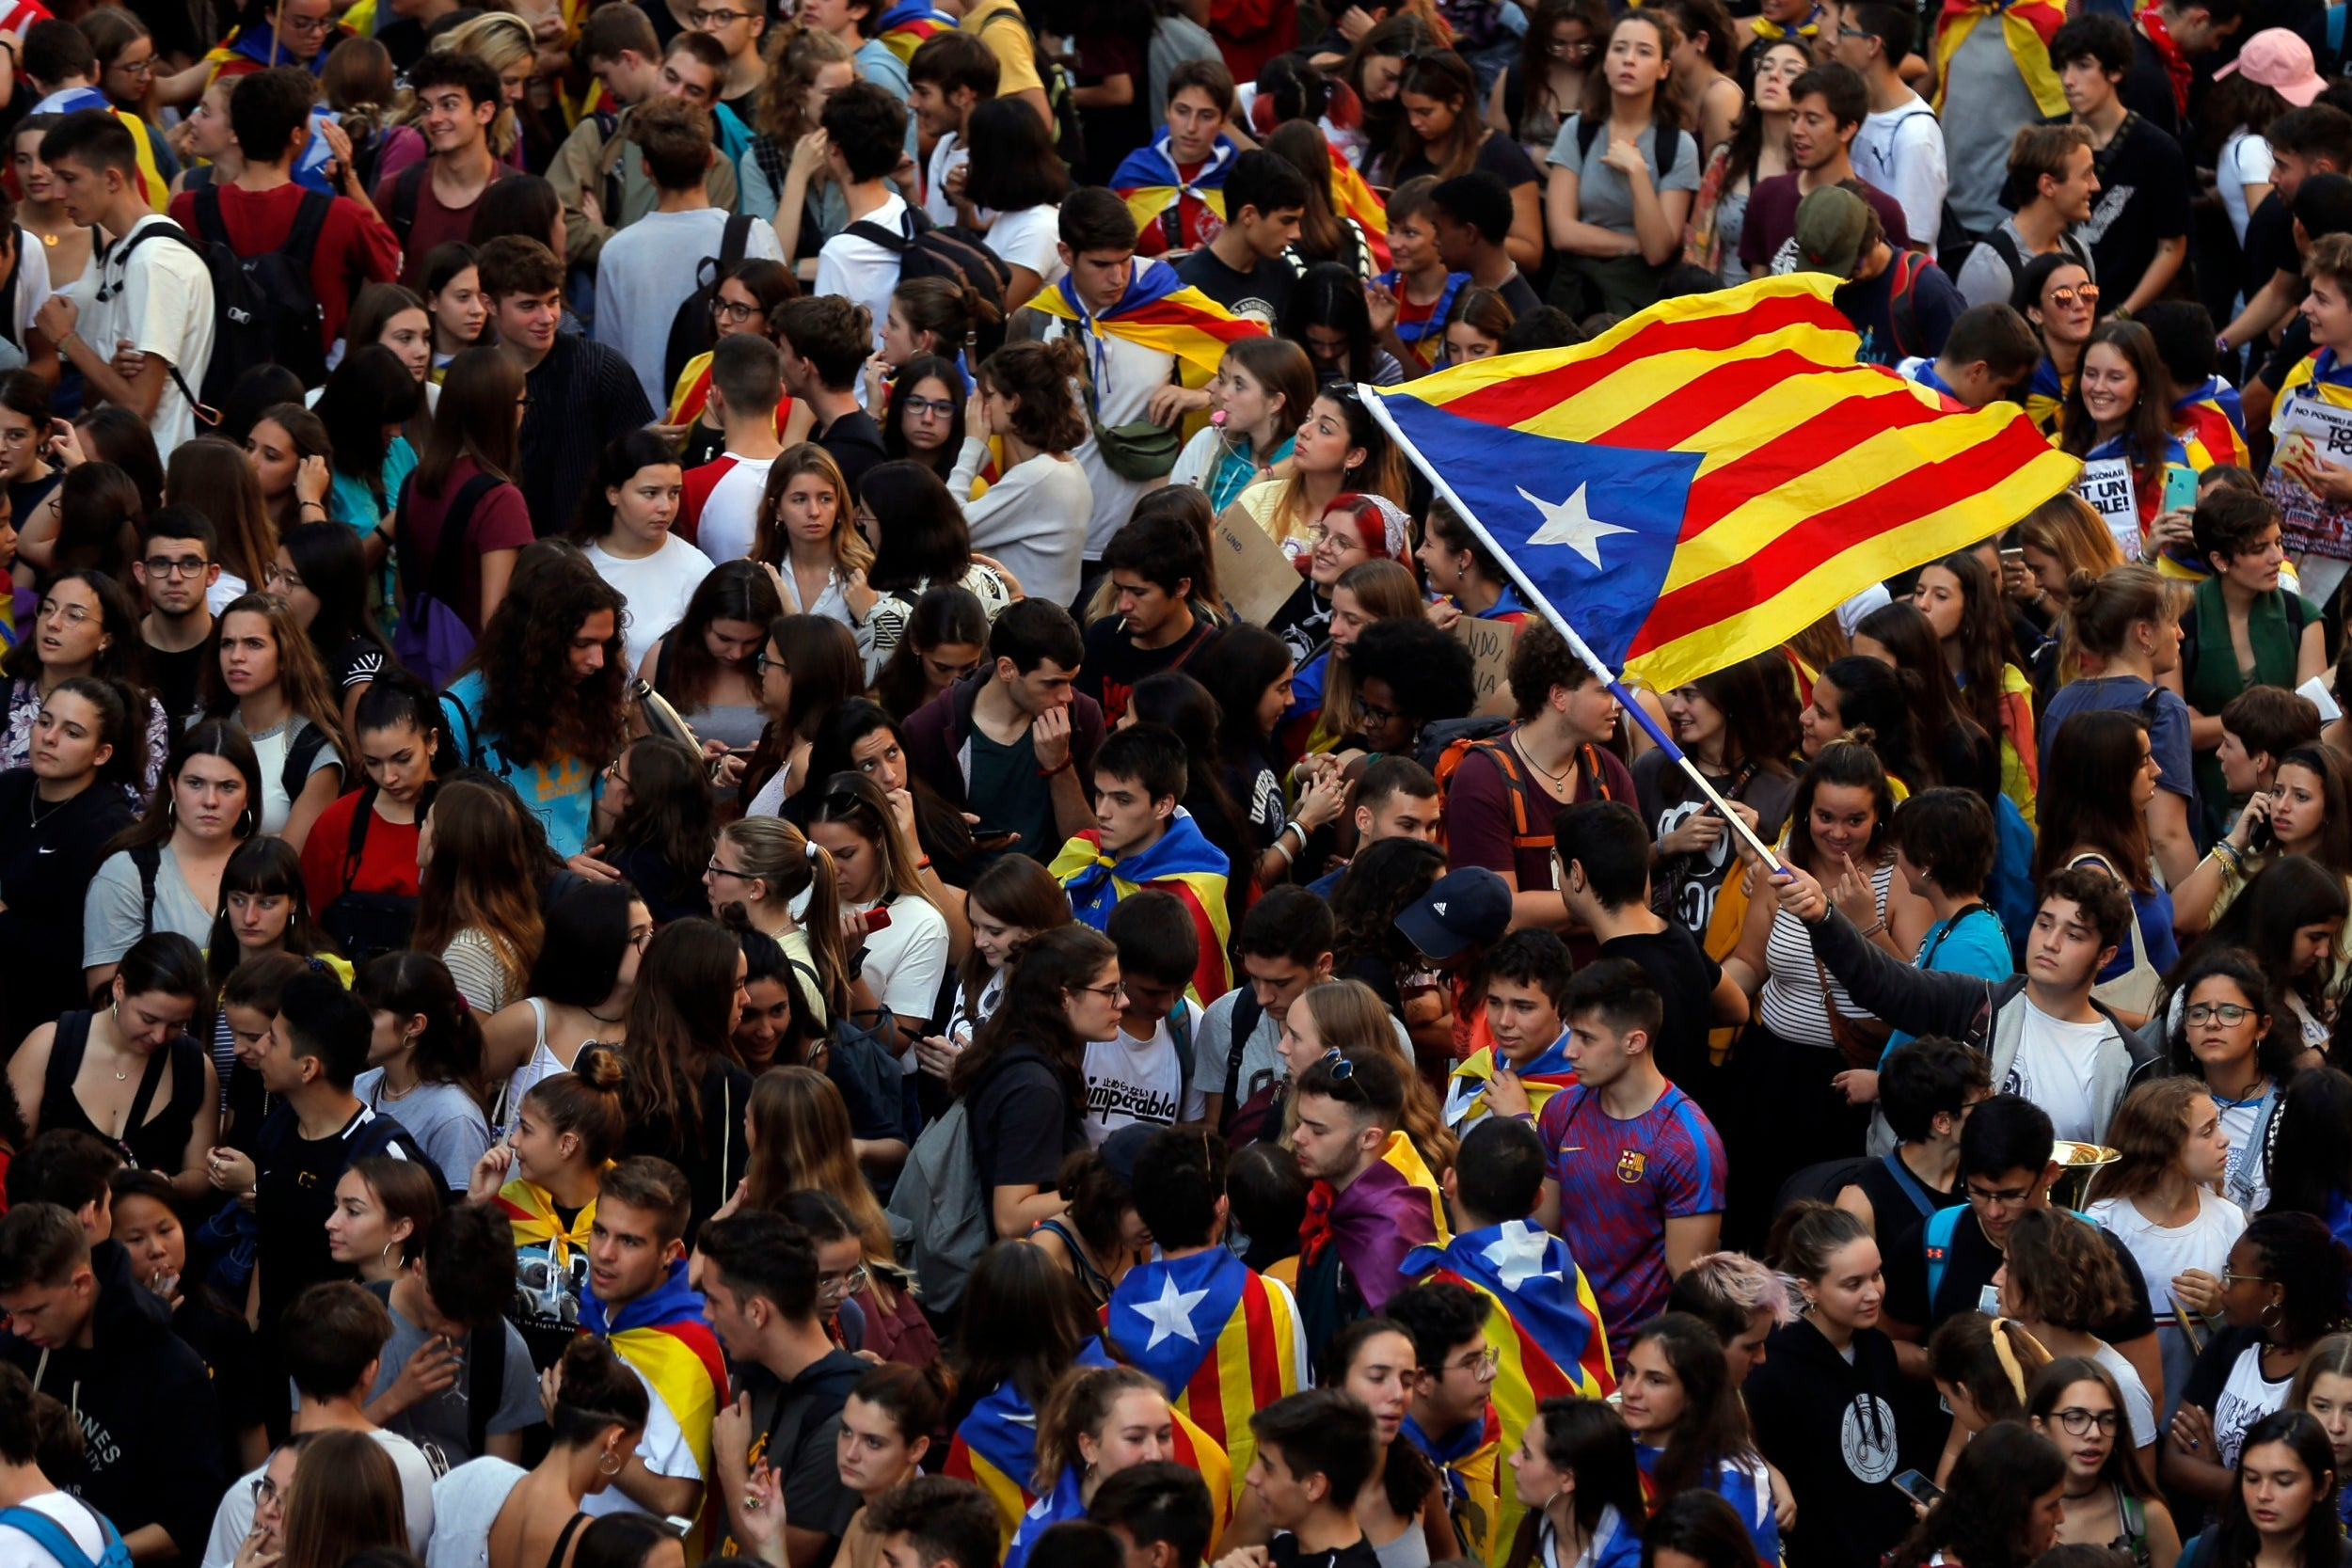 Barcelona Protests Hundreds Of Thousands To Join Rally After Catalan Separatist Leaders Jailed The Independent The Independent